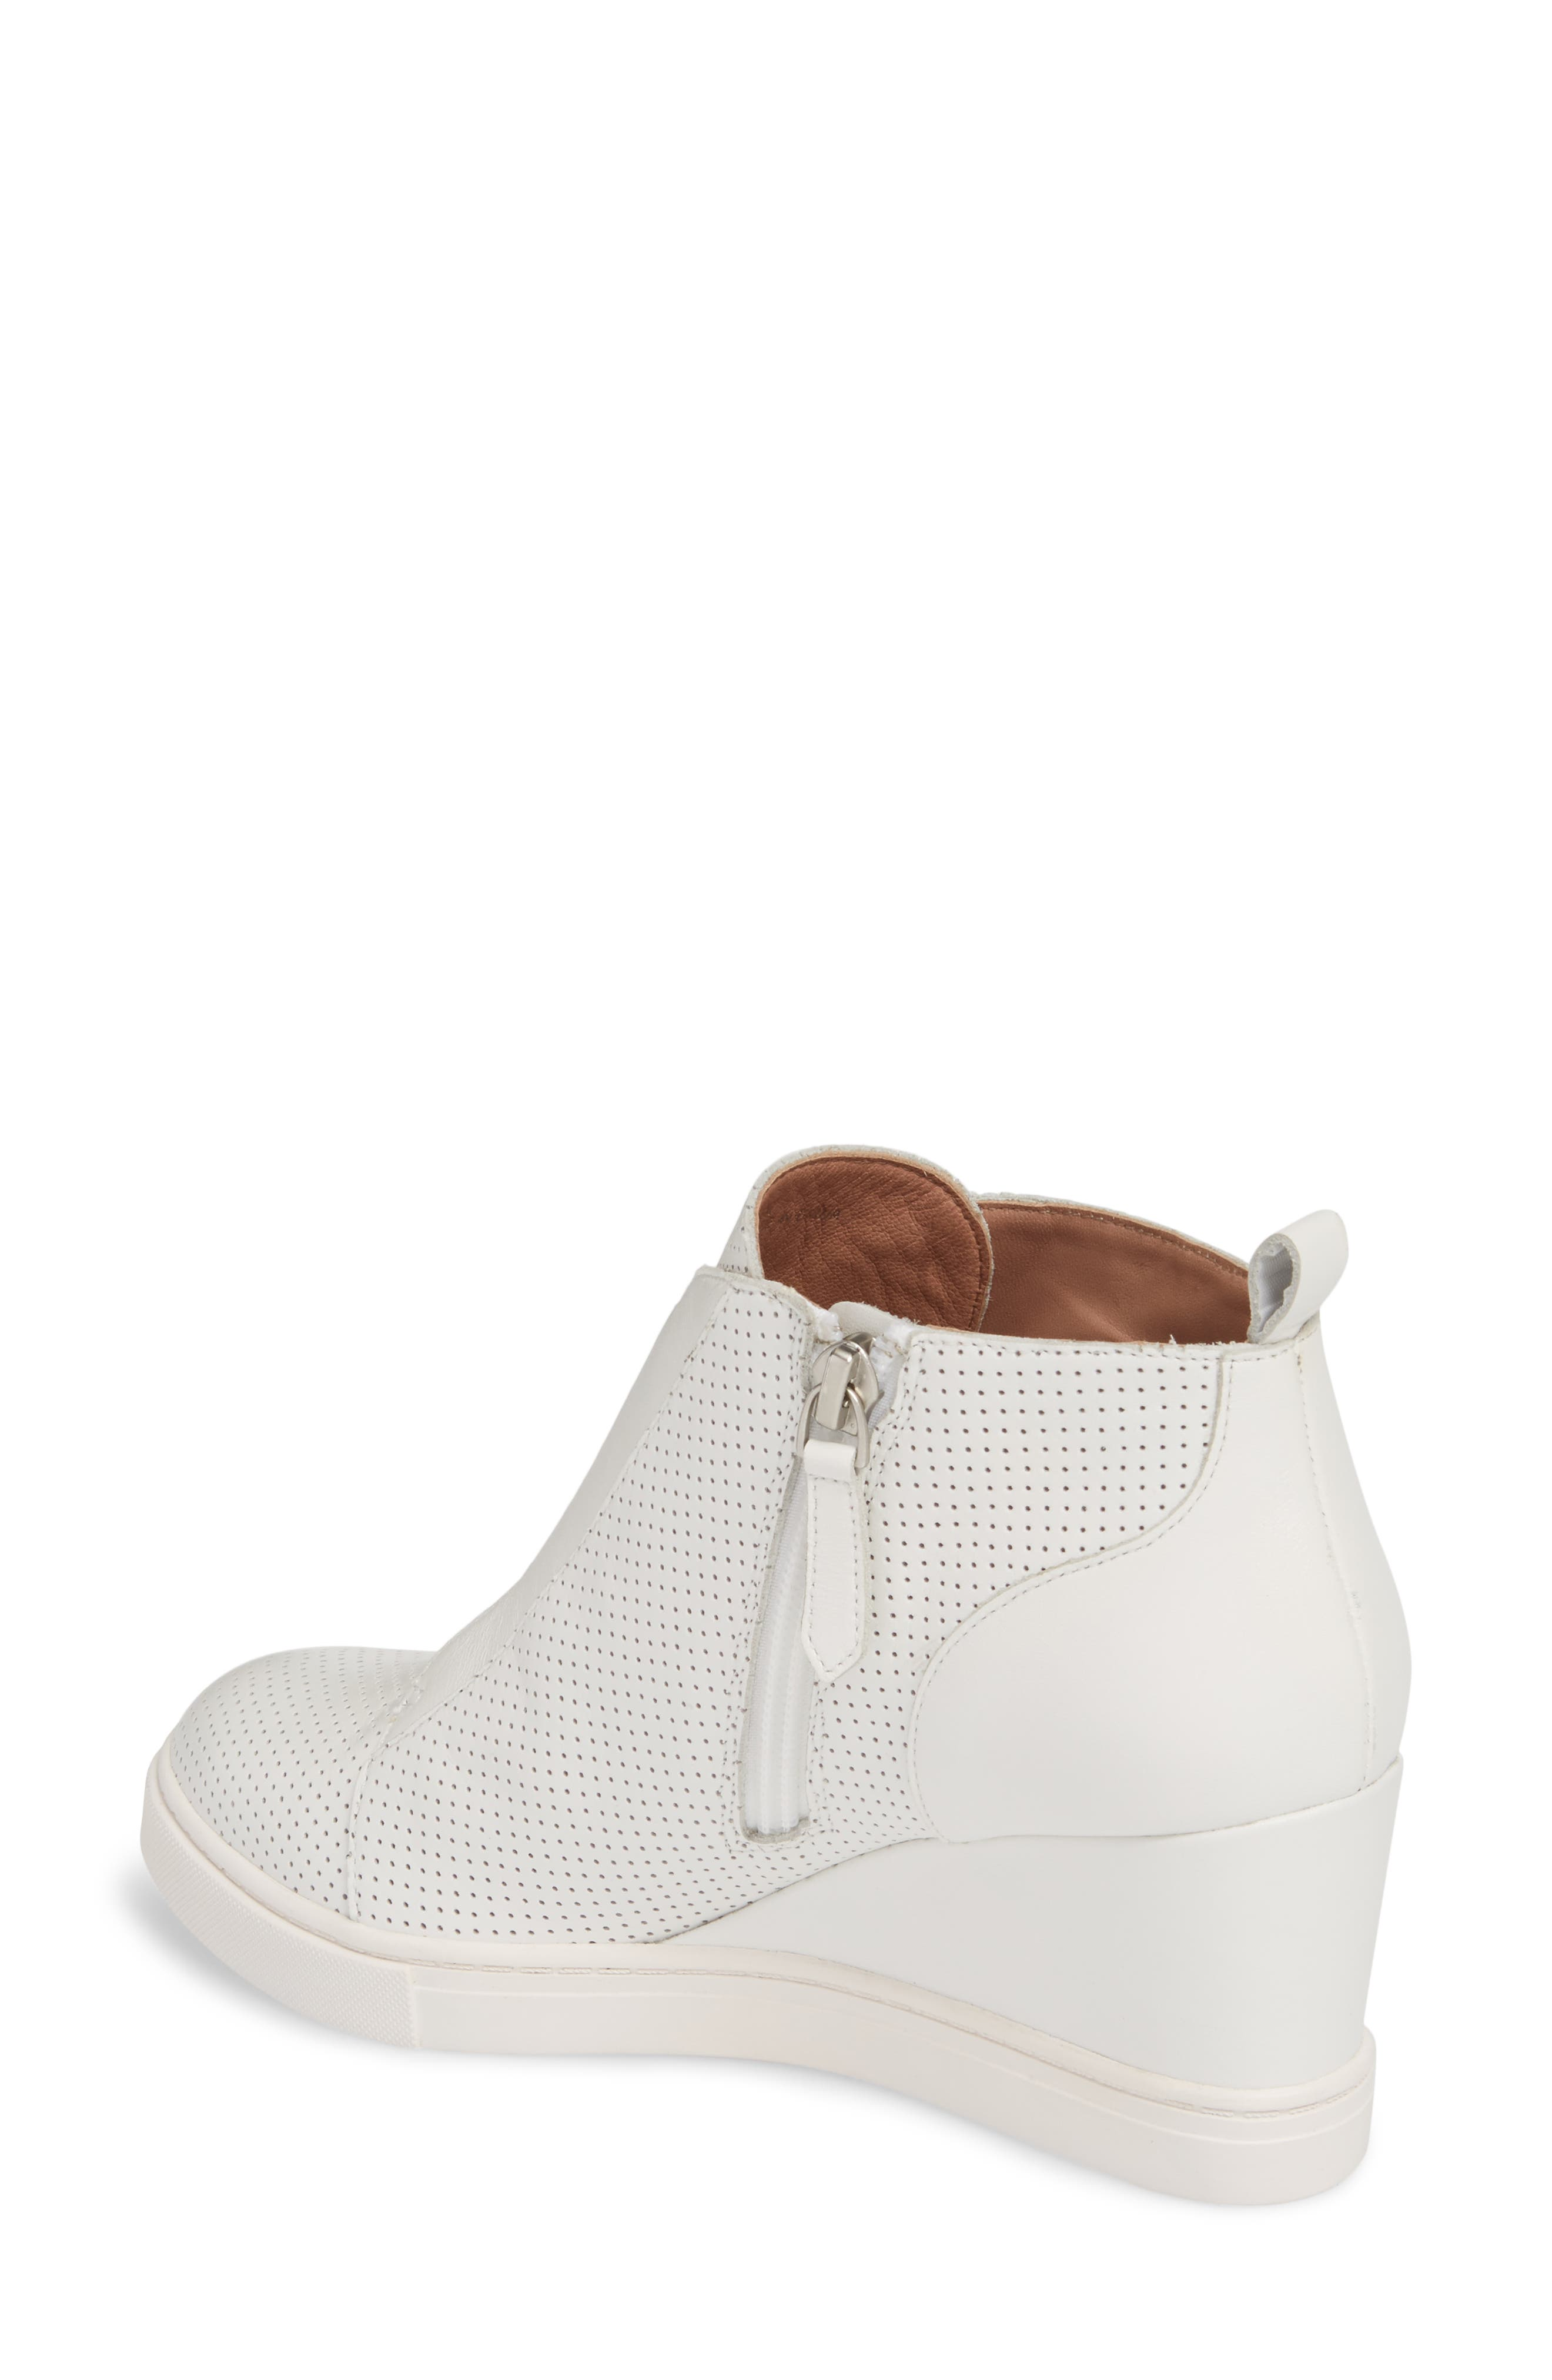 d5eb3e59a7f White Wedge Booties for Women